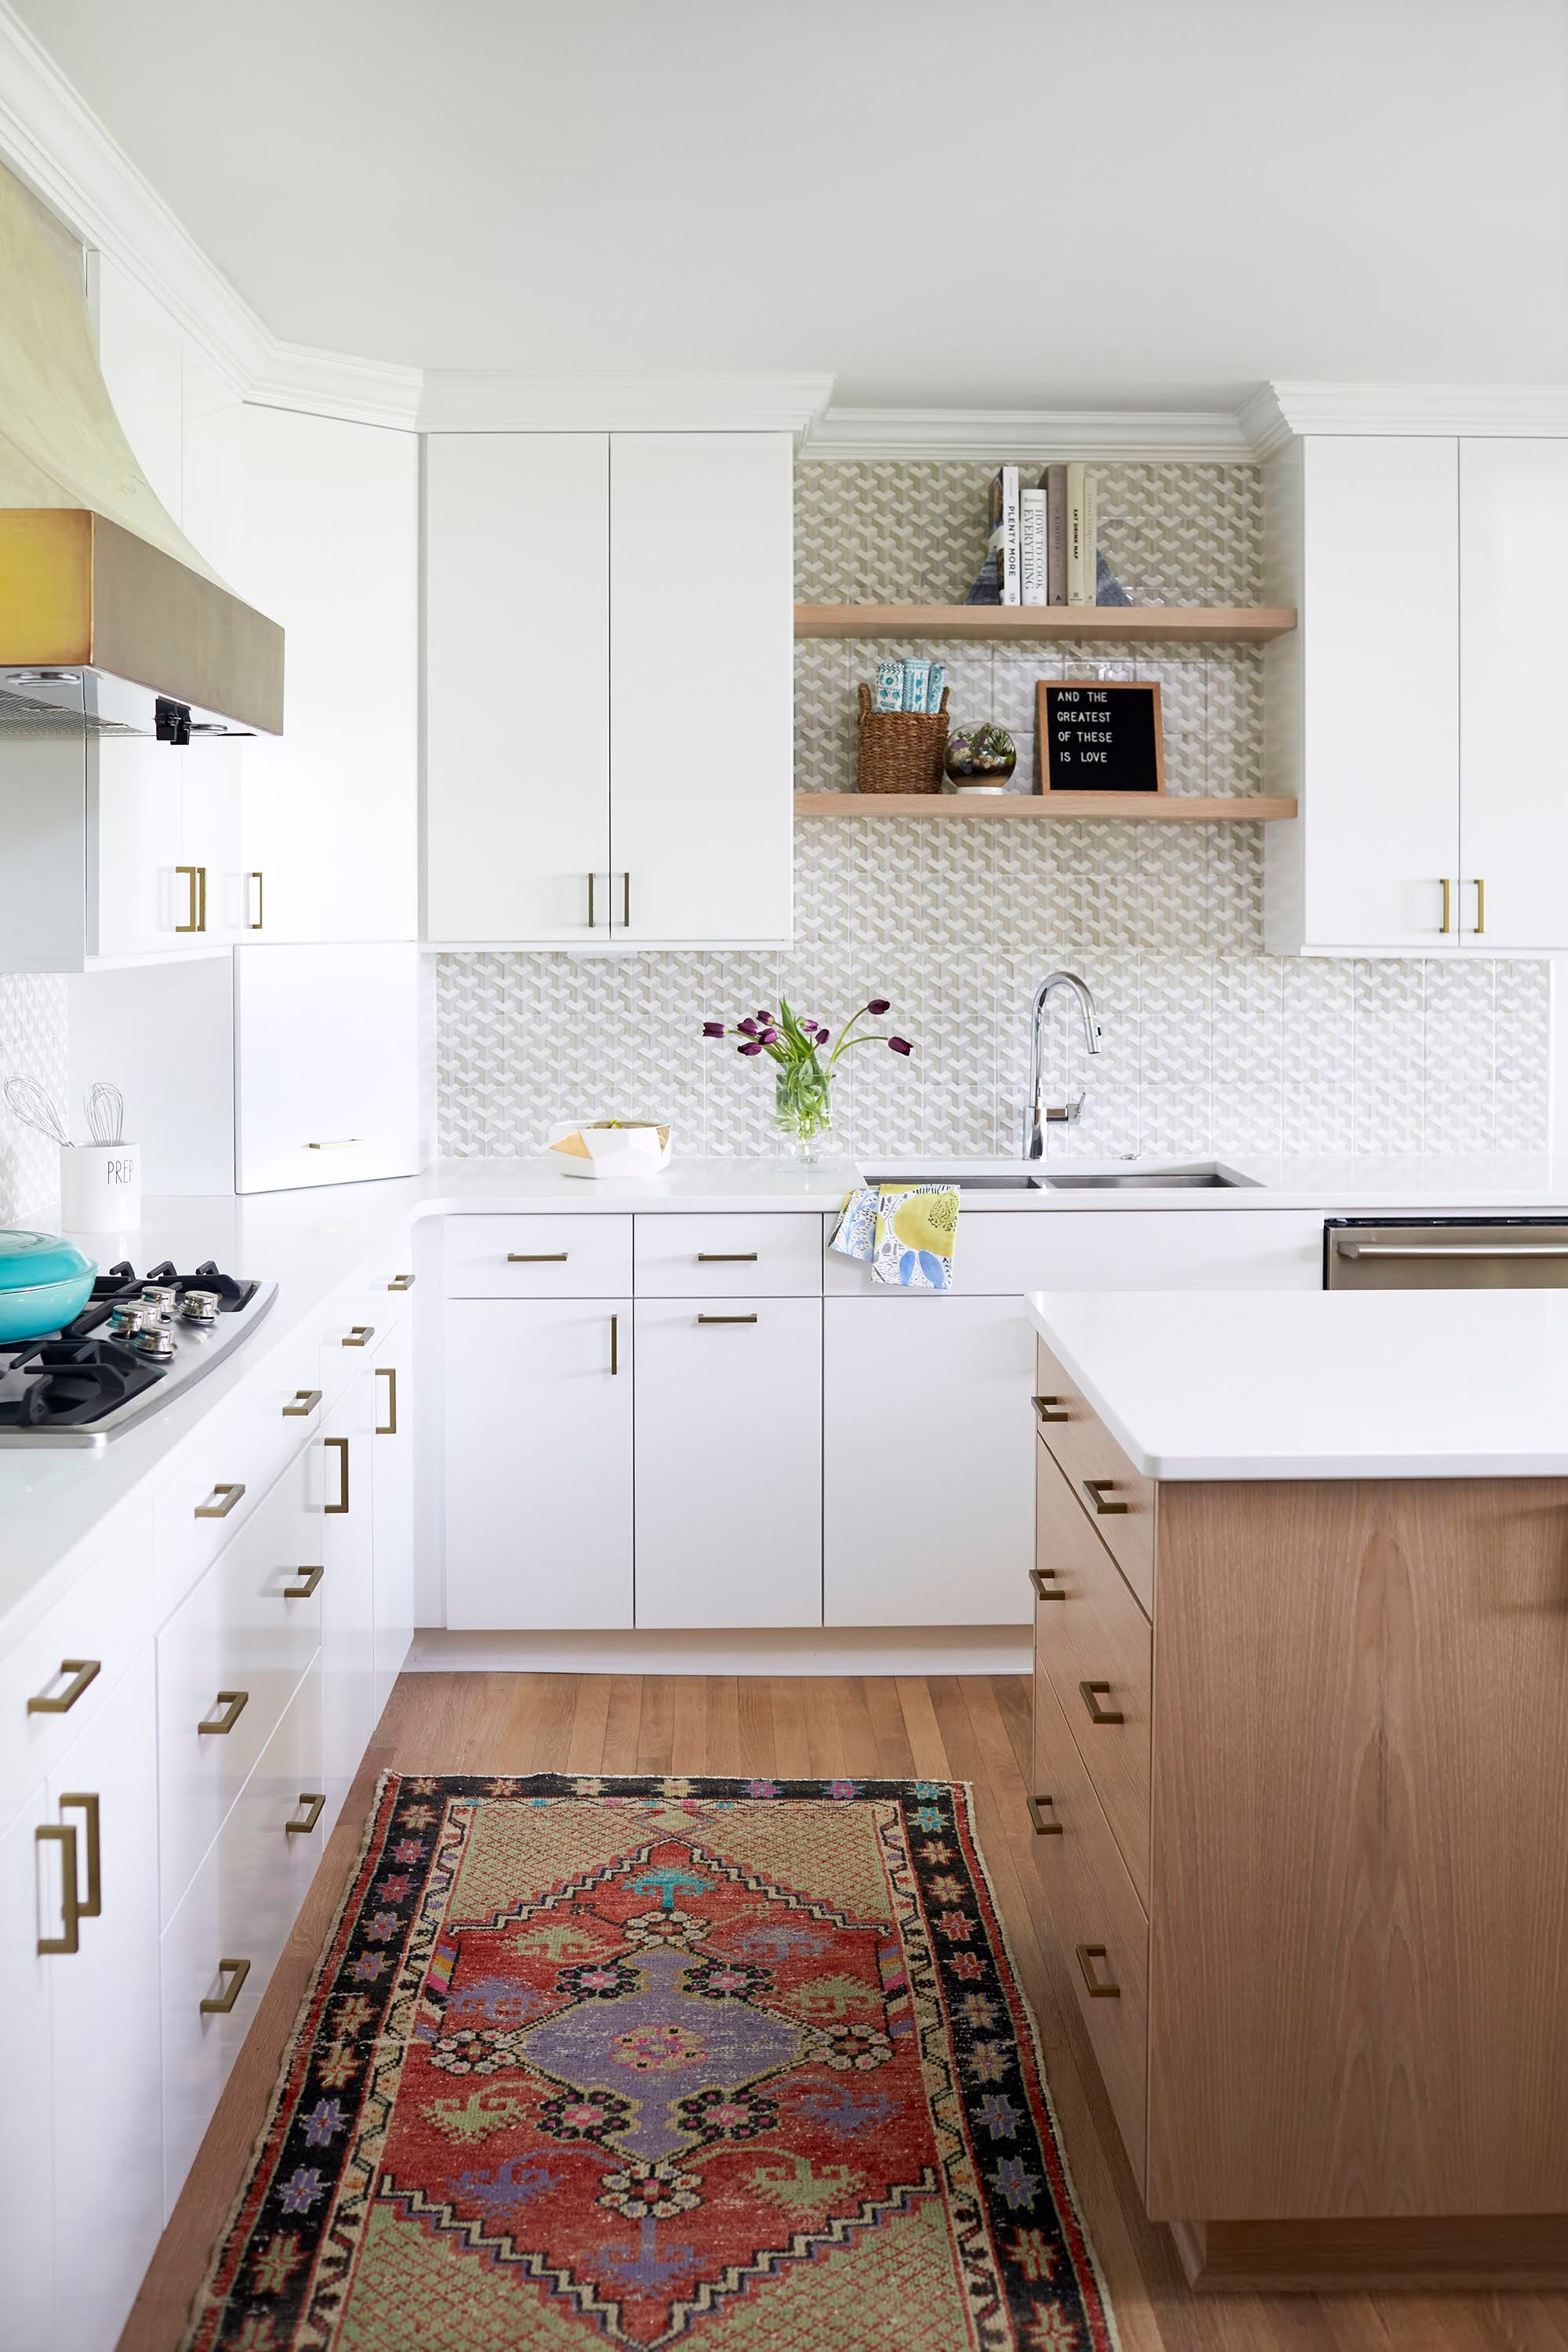 How Much You Should Spend on a Kitchen Renovation If You Want to Sell Your Home